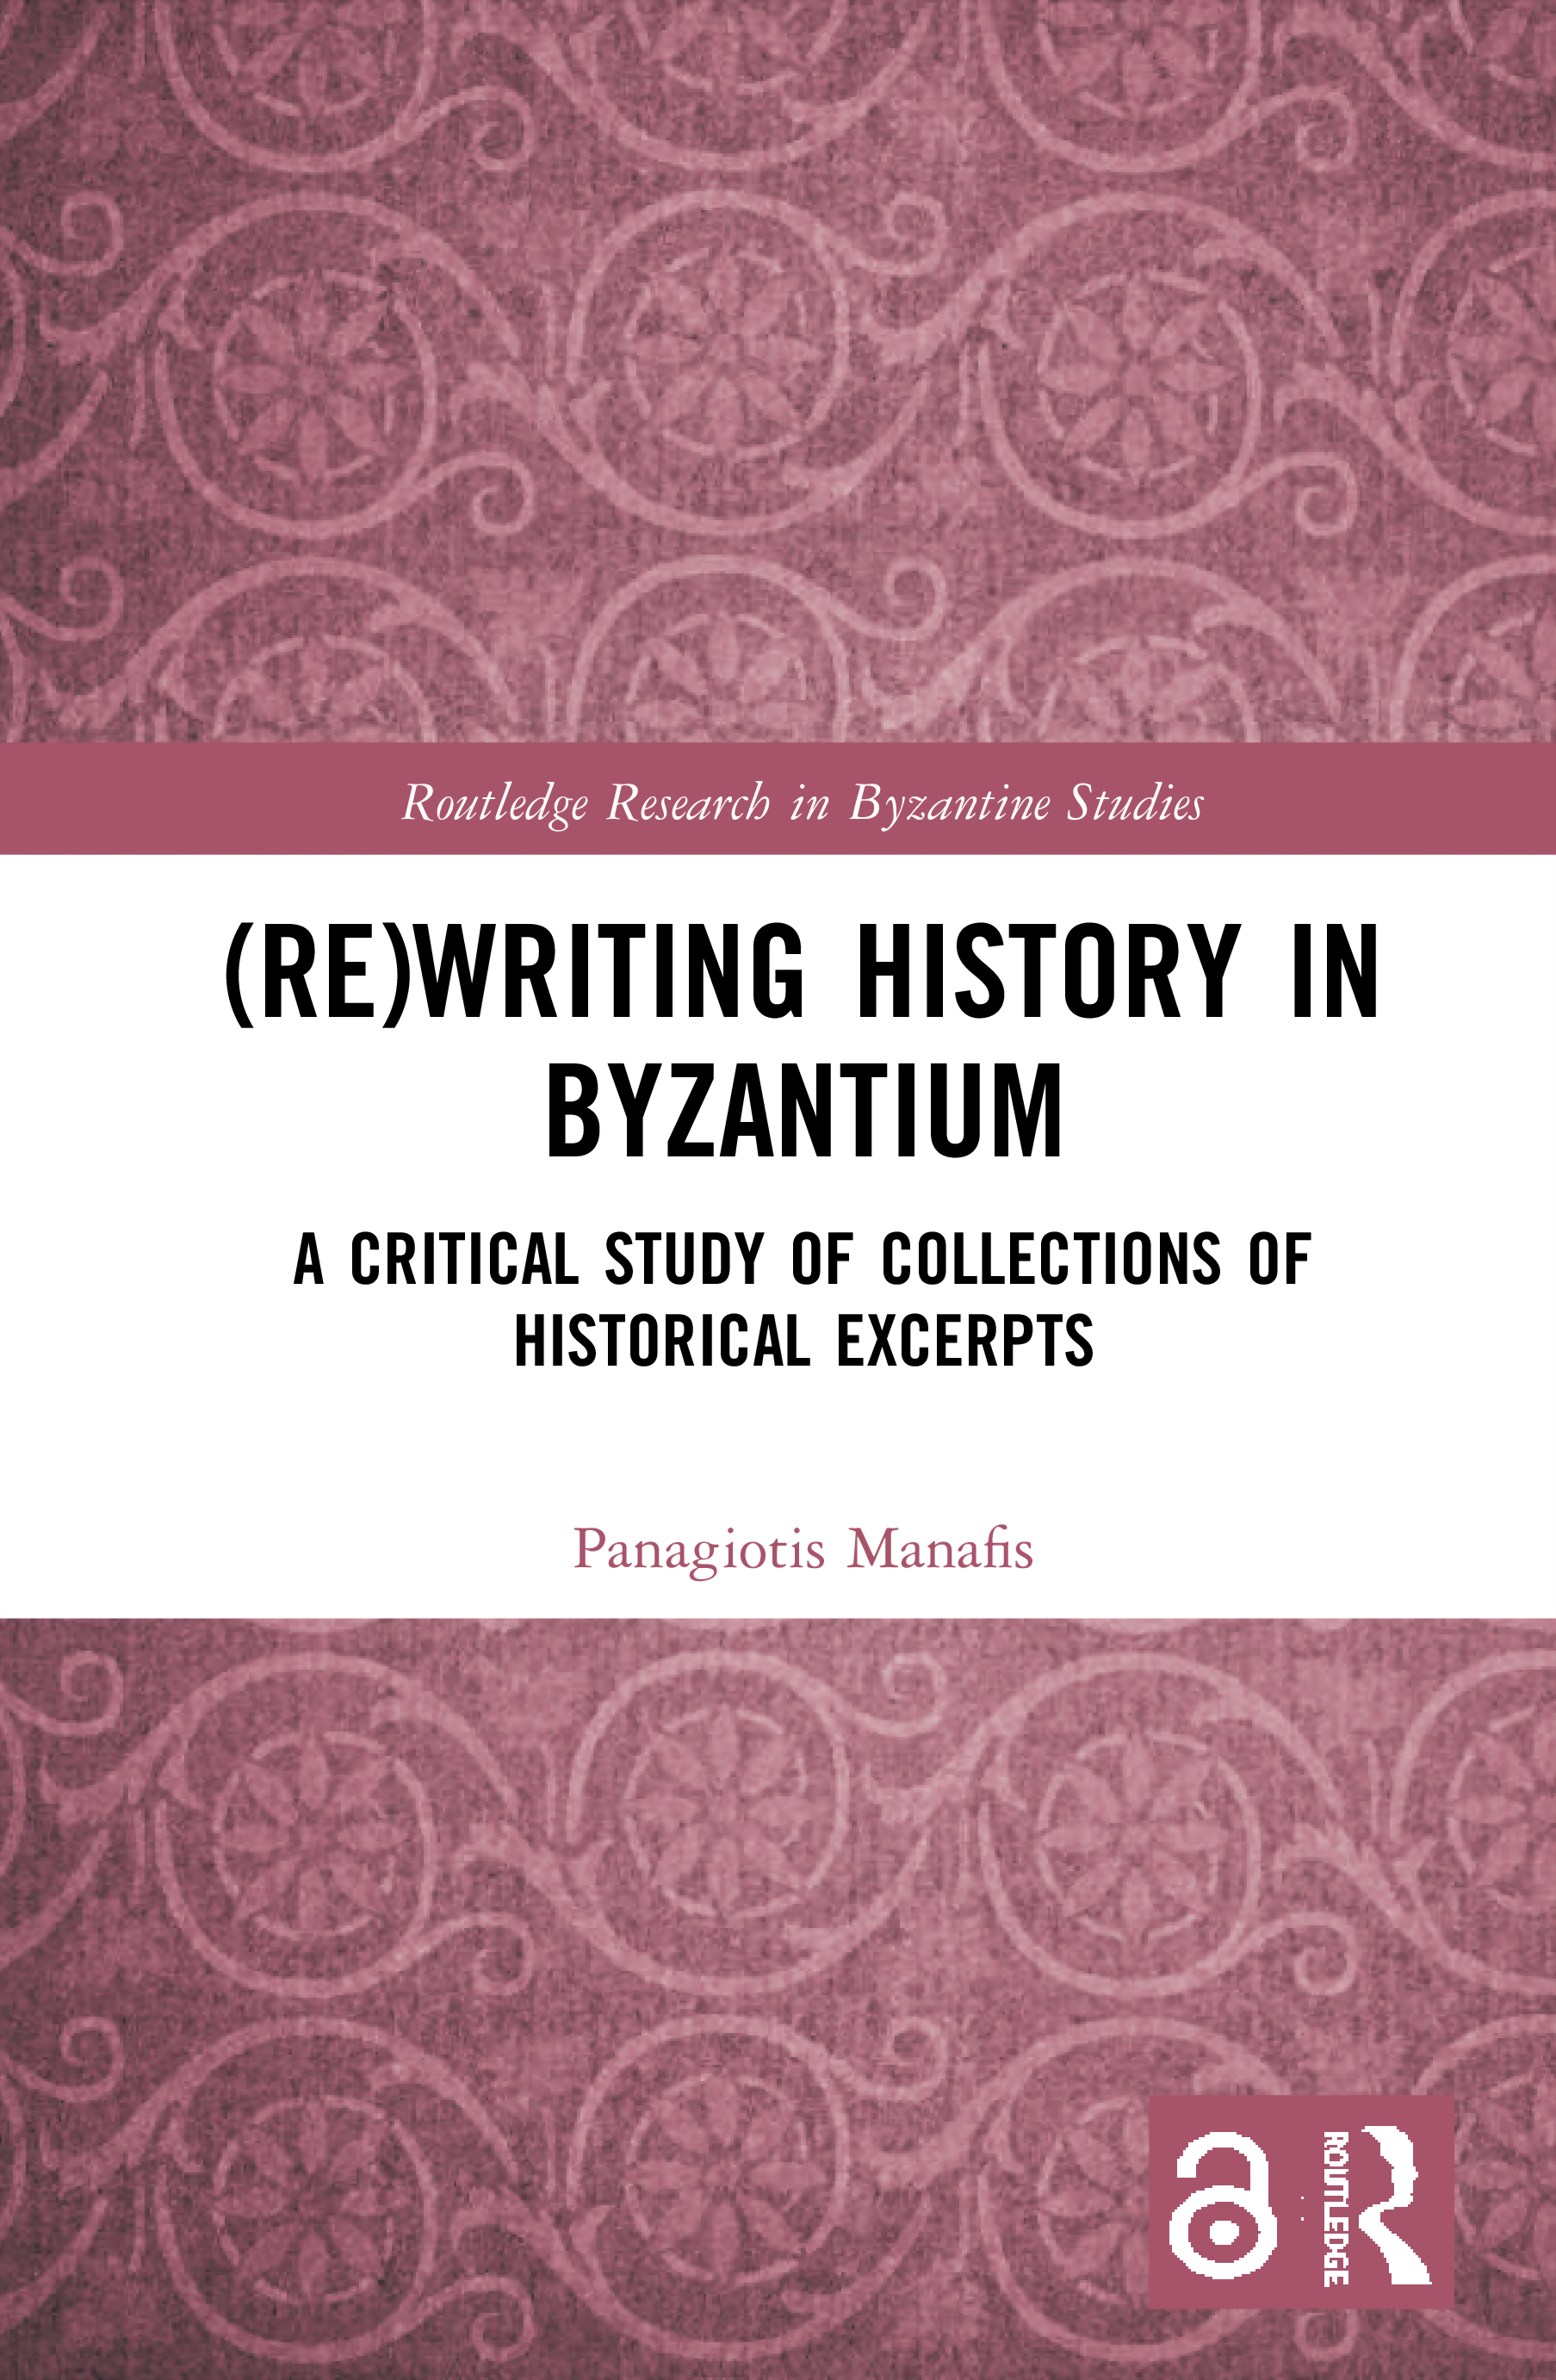 (Re)writing History in Byzantium: A Critical Study of Collections of Historical Excerpts book cover